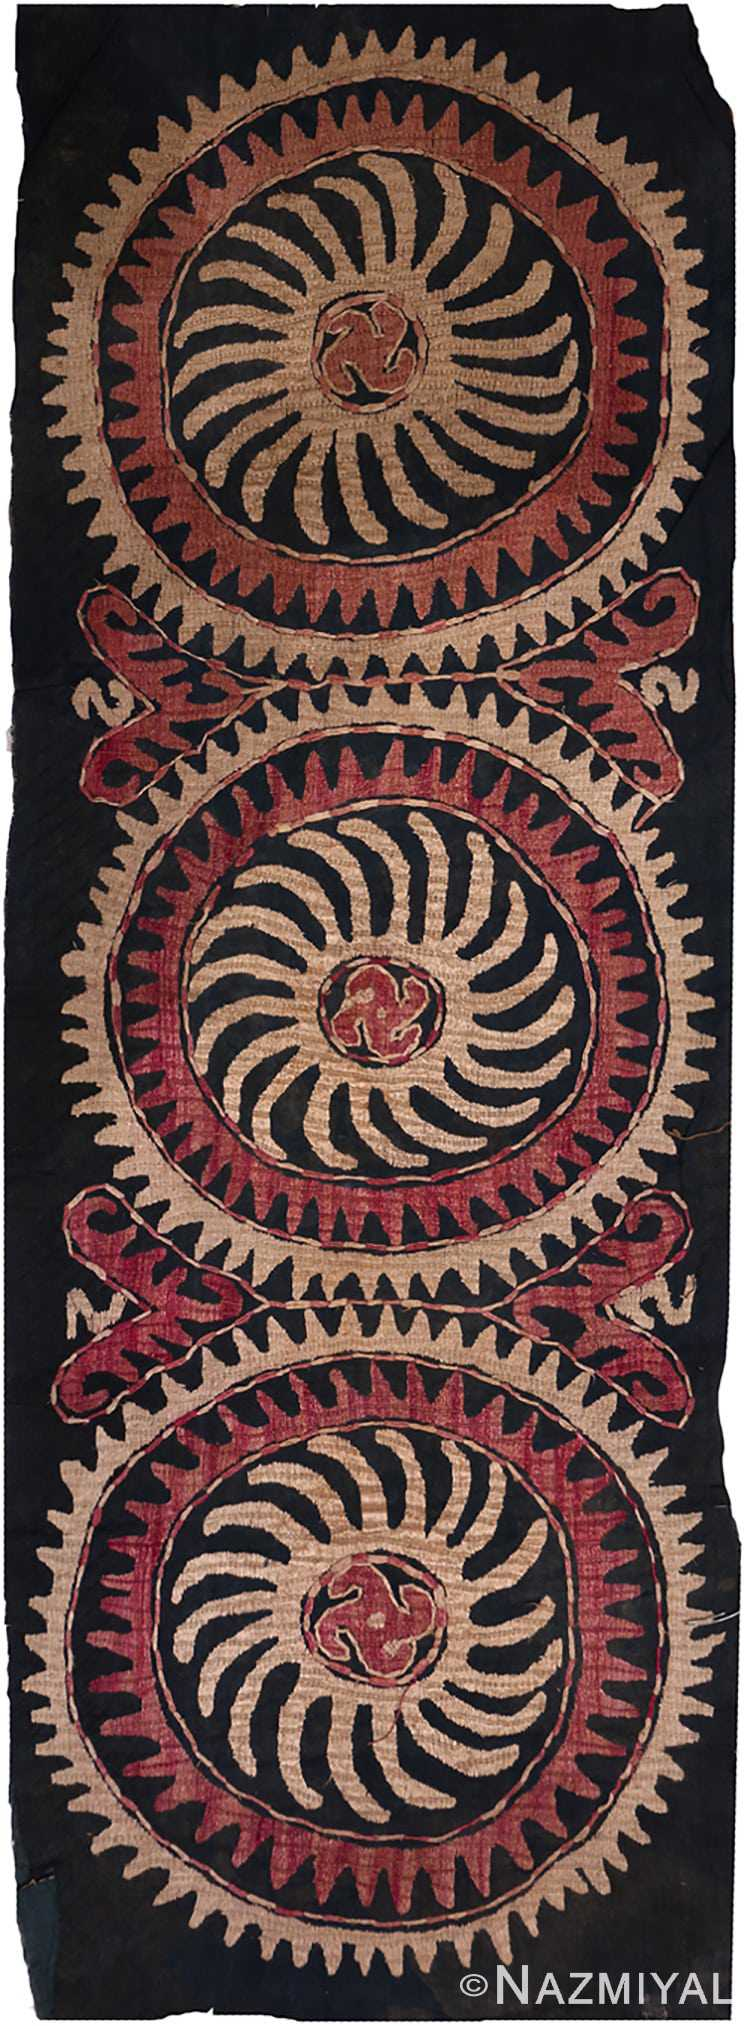 Full view 19th century Kaitag Dagestan embroidery rug 70085 by Nazmiyal in NYC